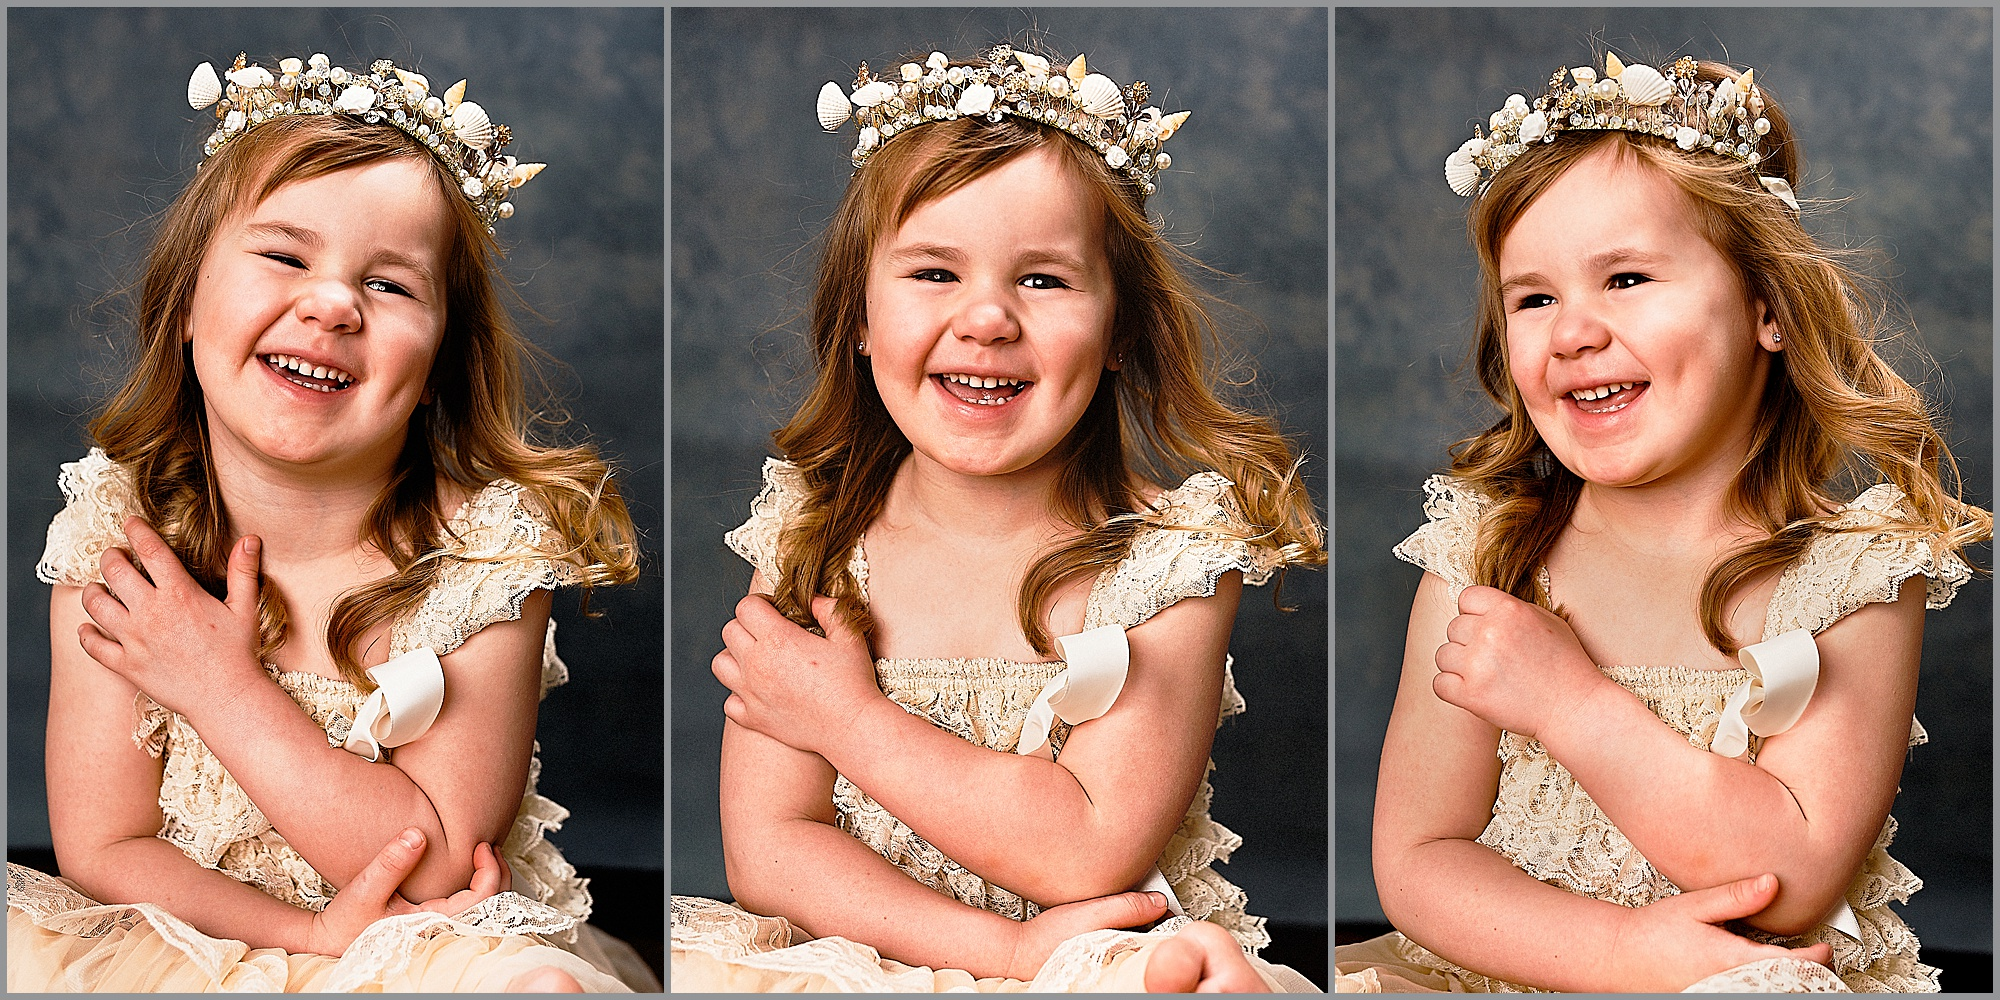 jamie_leonard_photography_studiio_birthday_portrait_mount_pleasant_youngwood_greensburg_murrysville_ligonier_latrobe.jpg